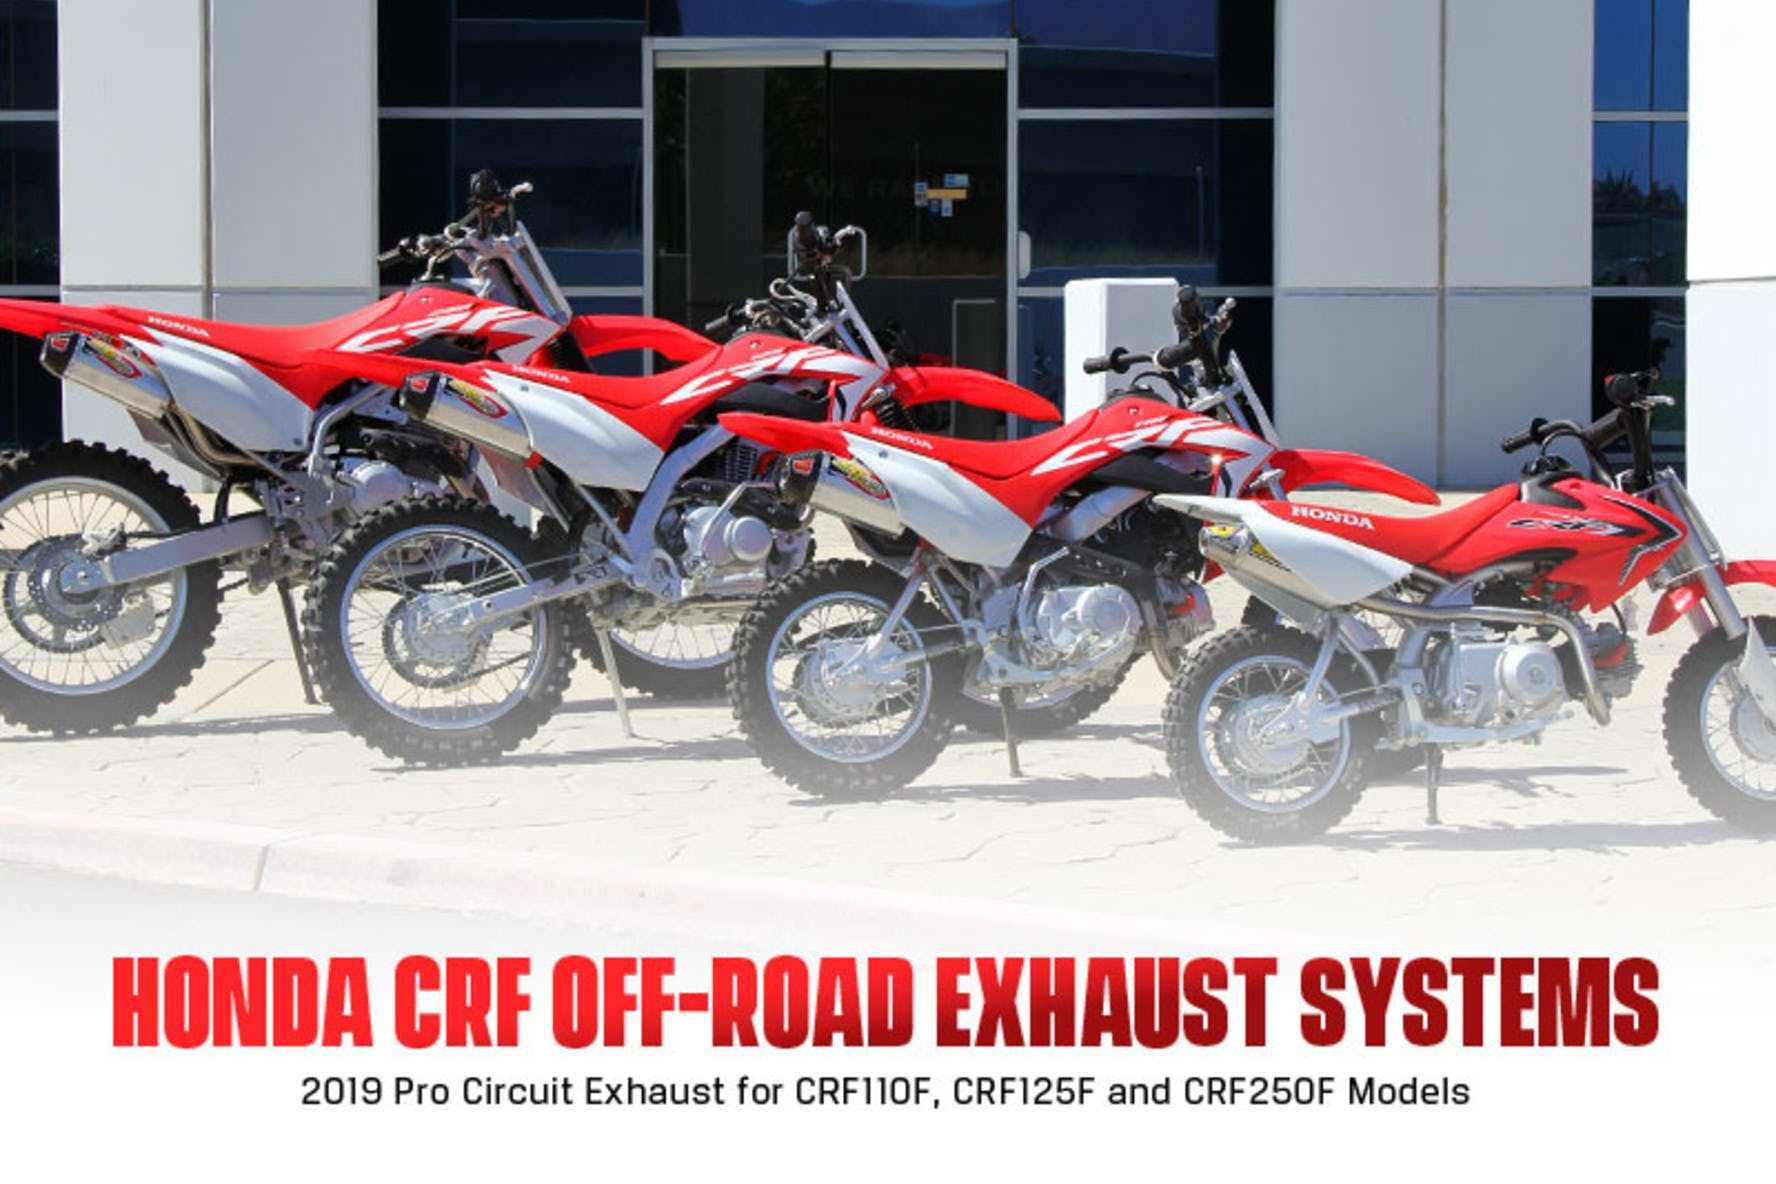 Pro Circuit Announces 2019 CRF Off-Road Exhaust Systems Will